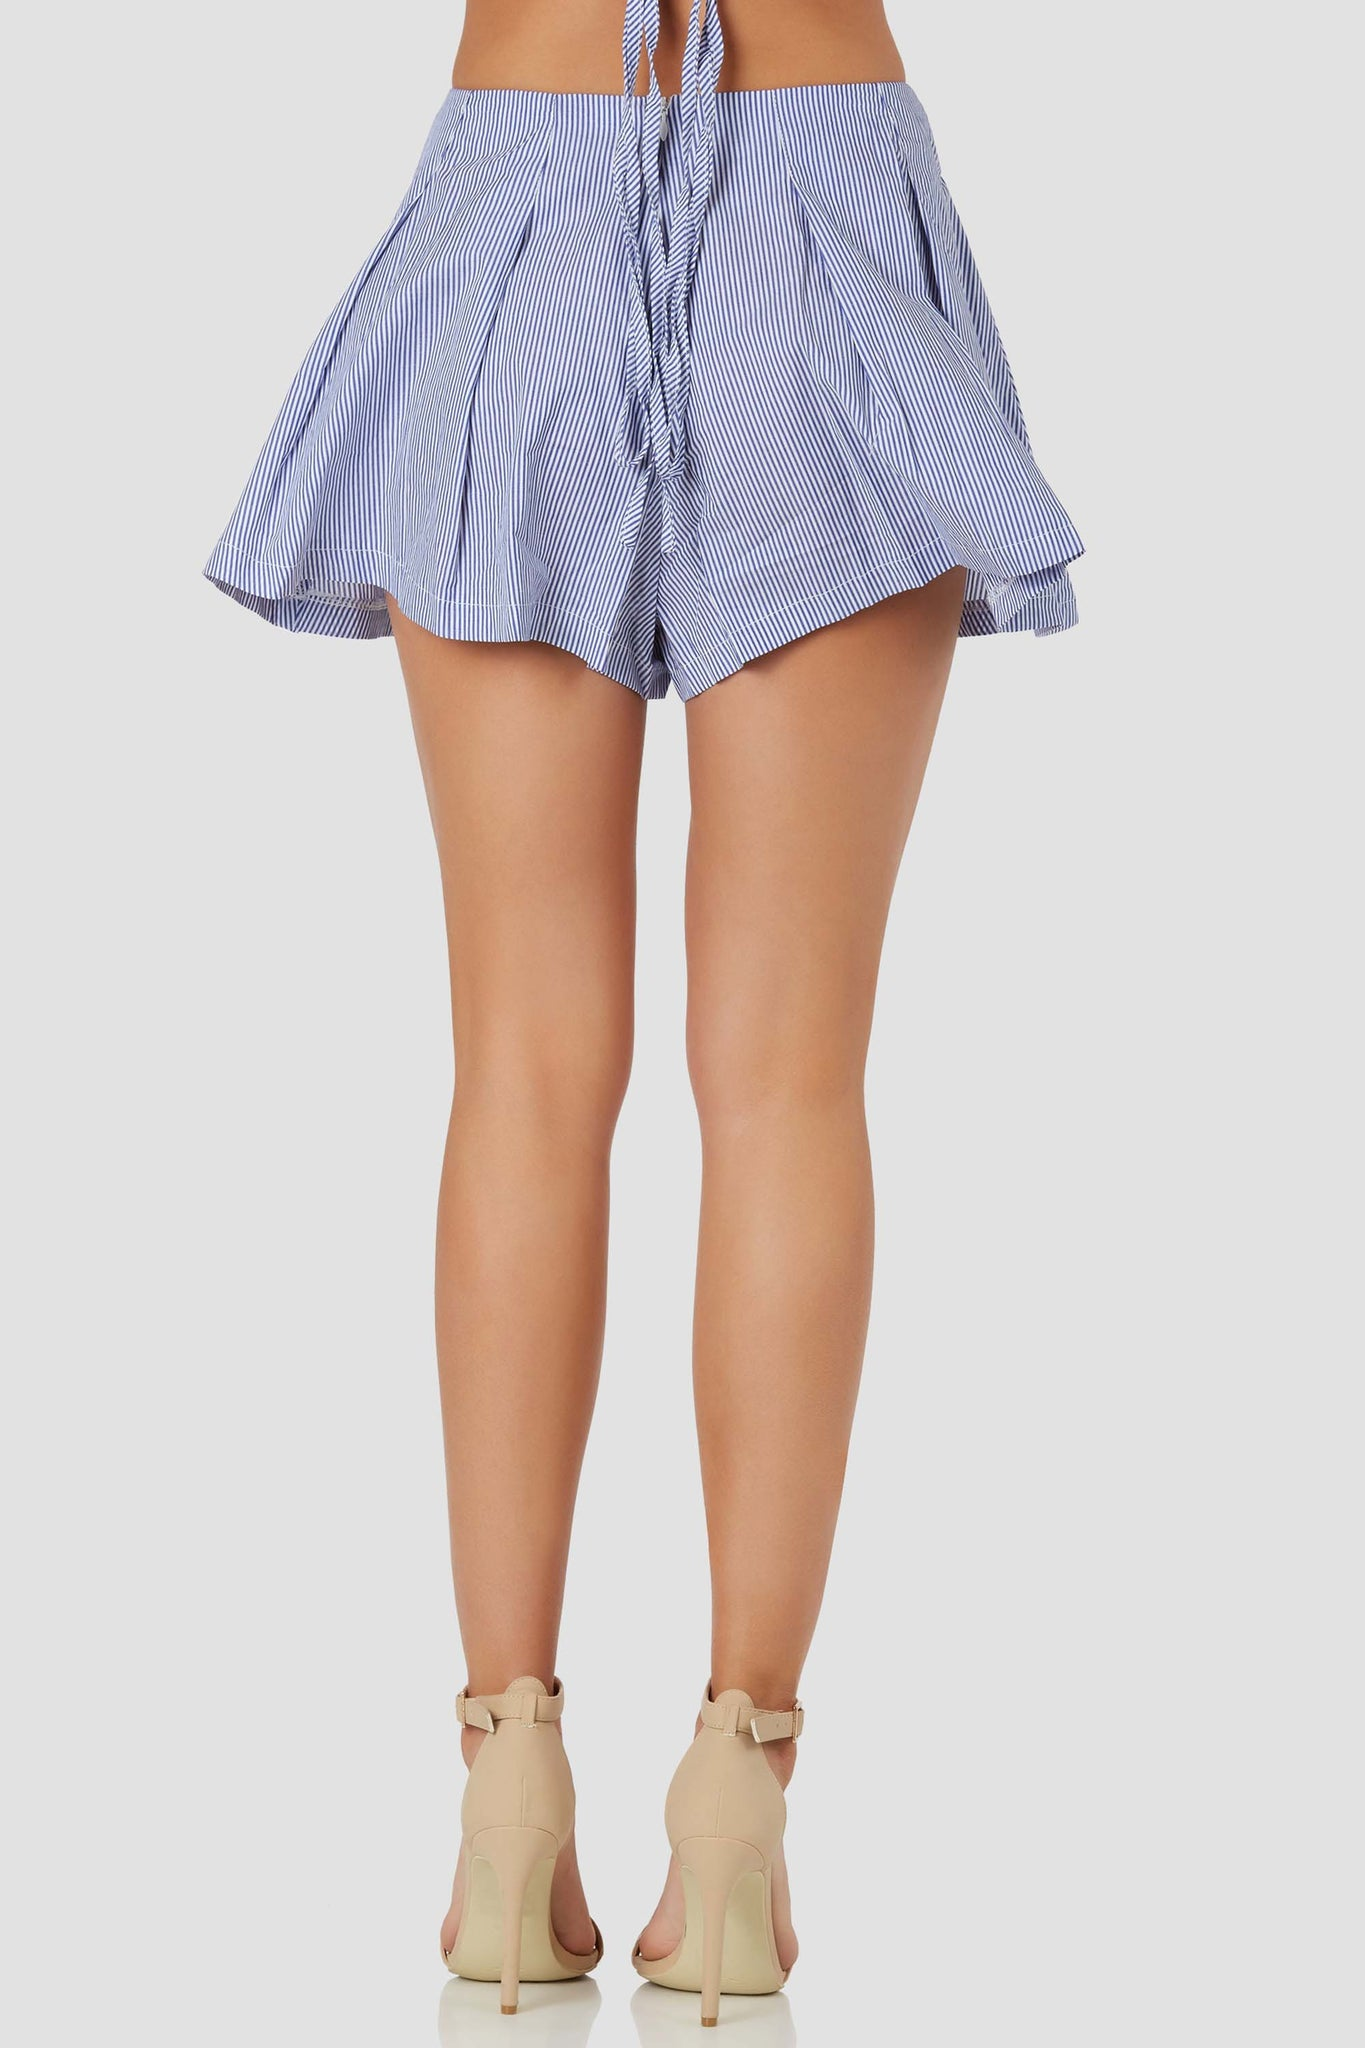 Flirty high rise shorts with trendy strie patterns throughout. Flared A-line hem with lace up detailing in front and back zip closure.